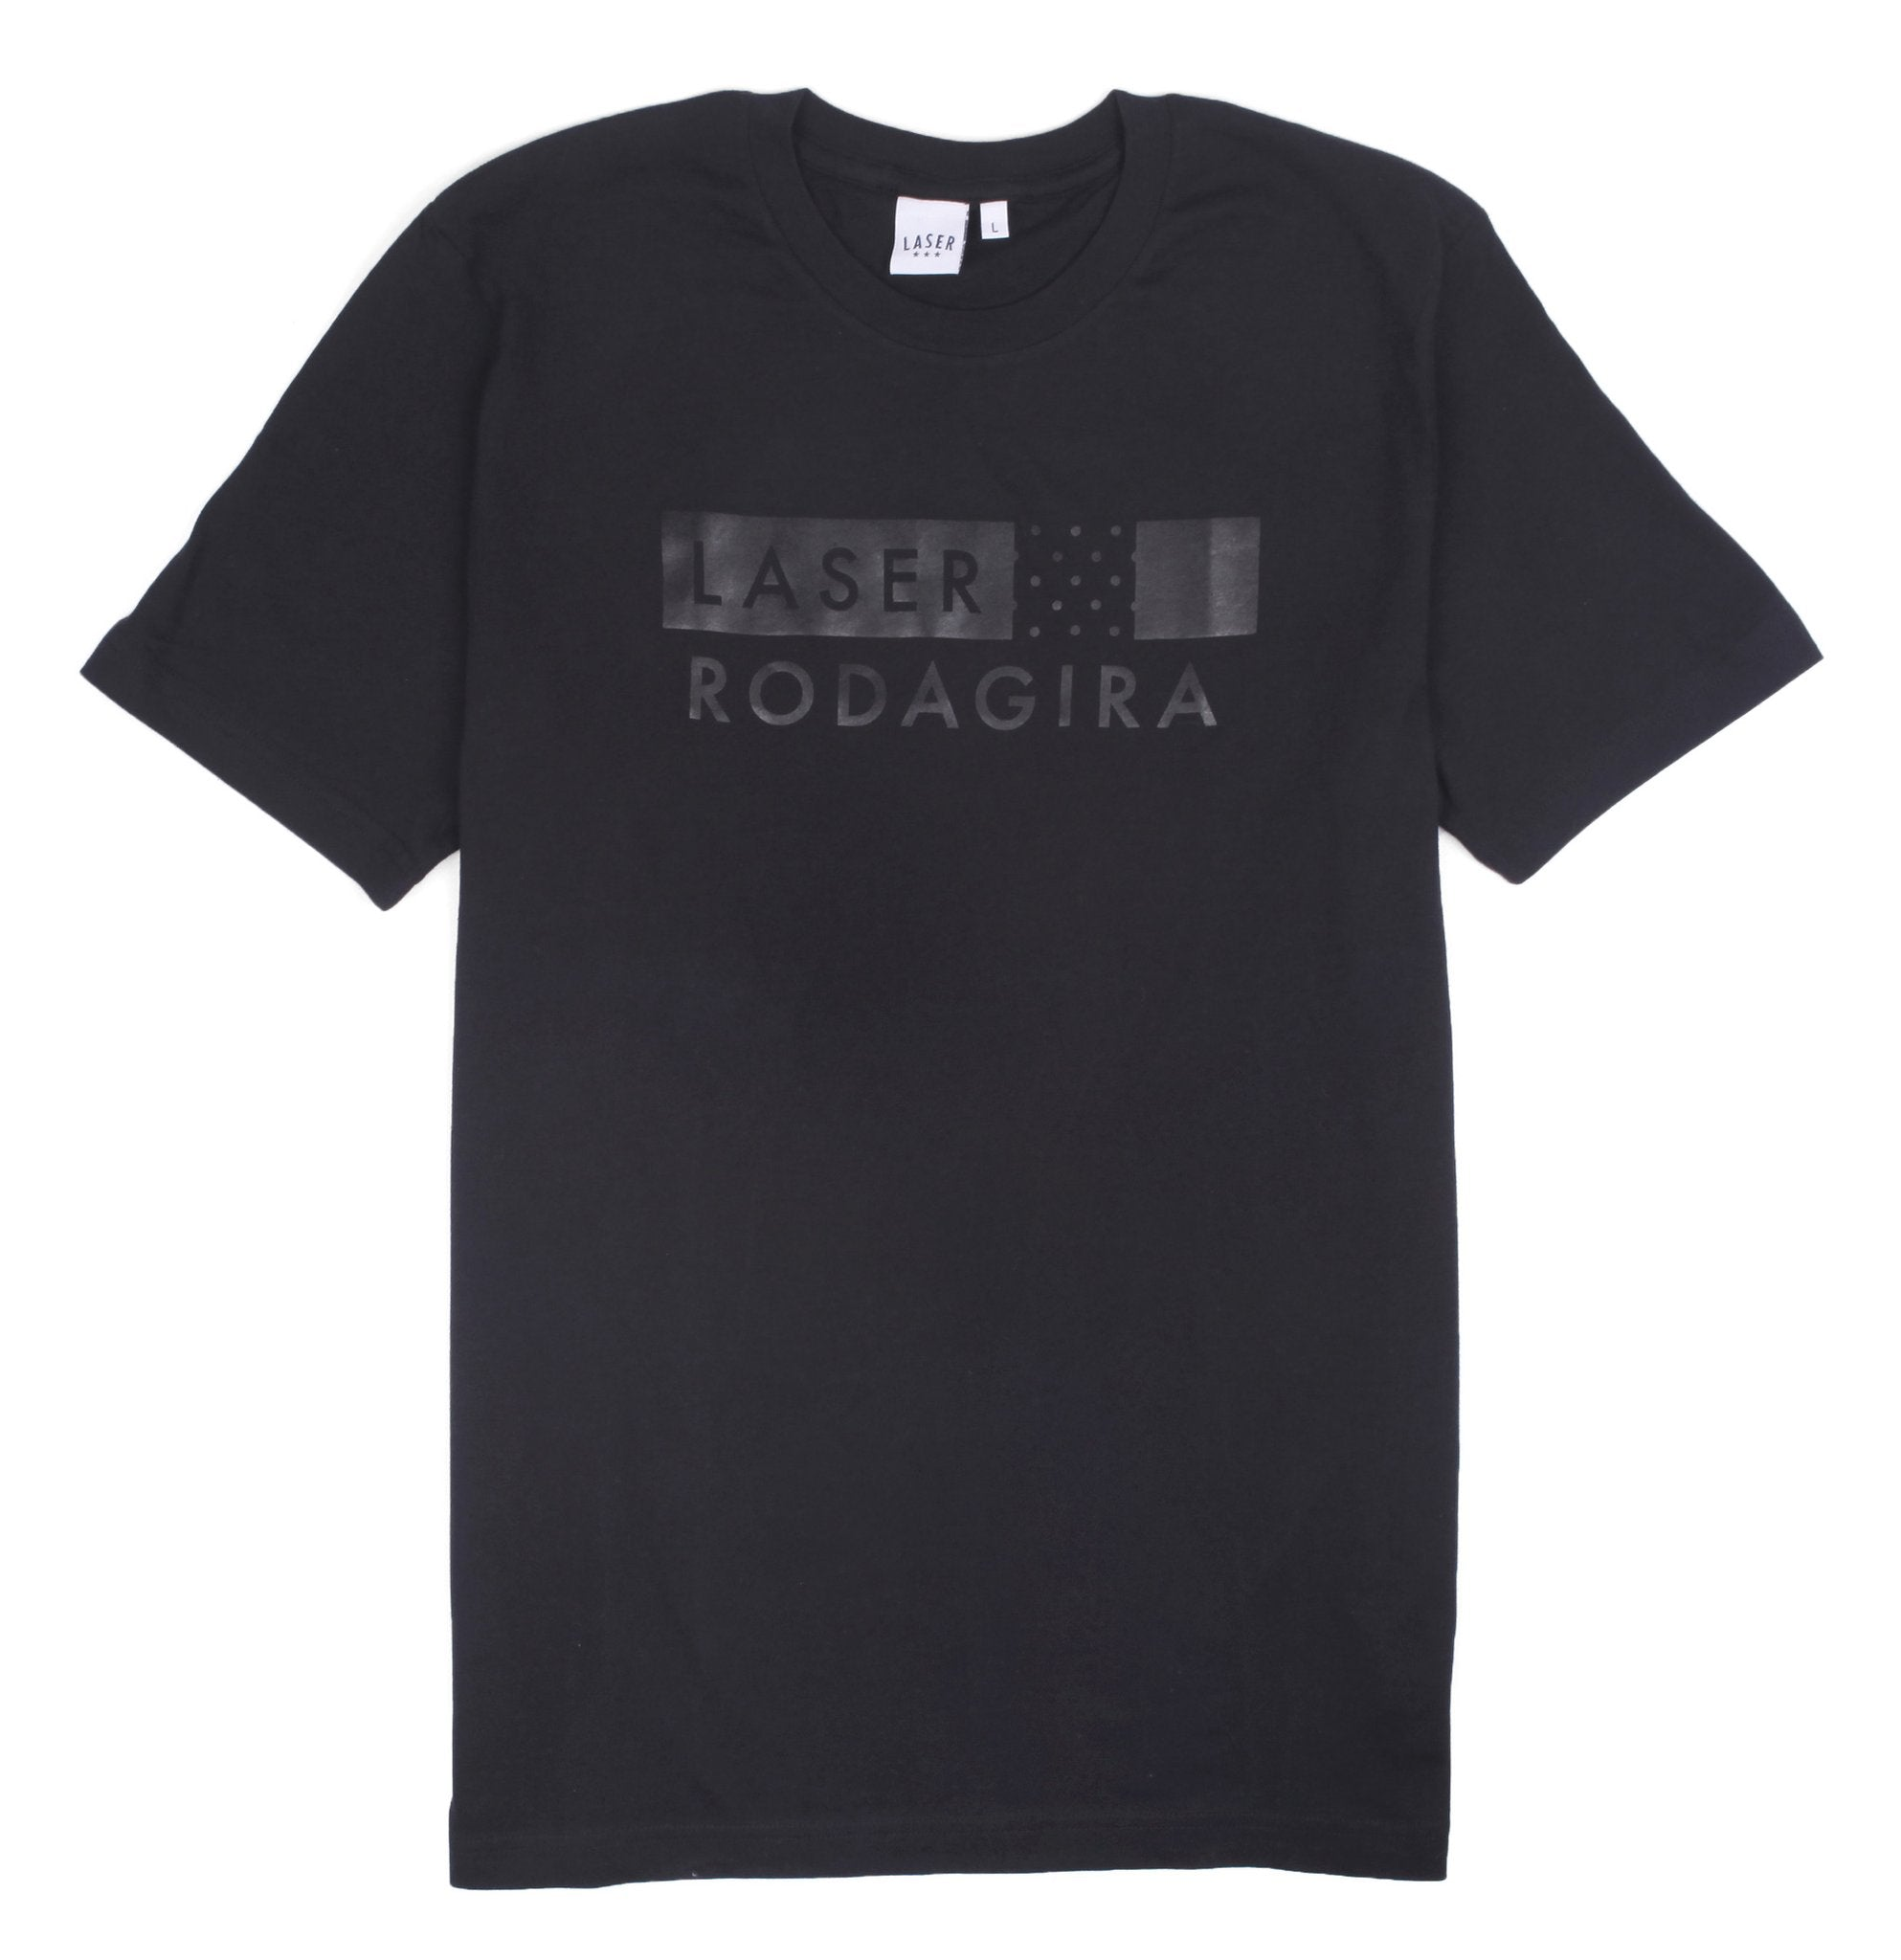 RODAGIRA X LASER WARM UP TEE ALL BLACK